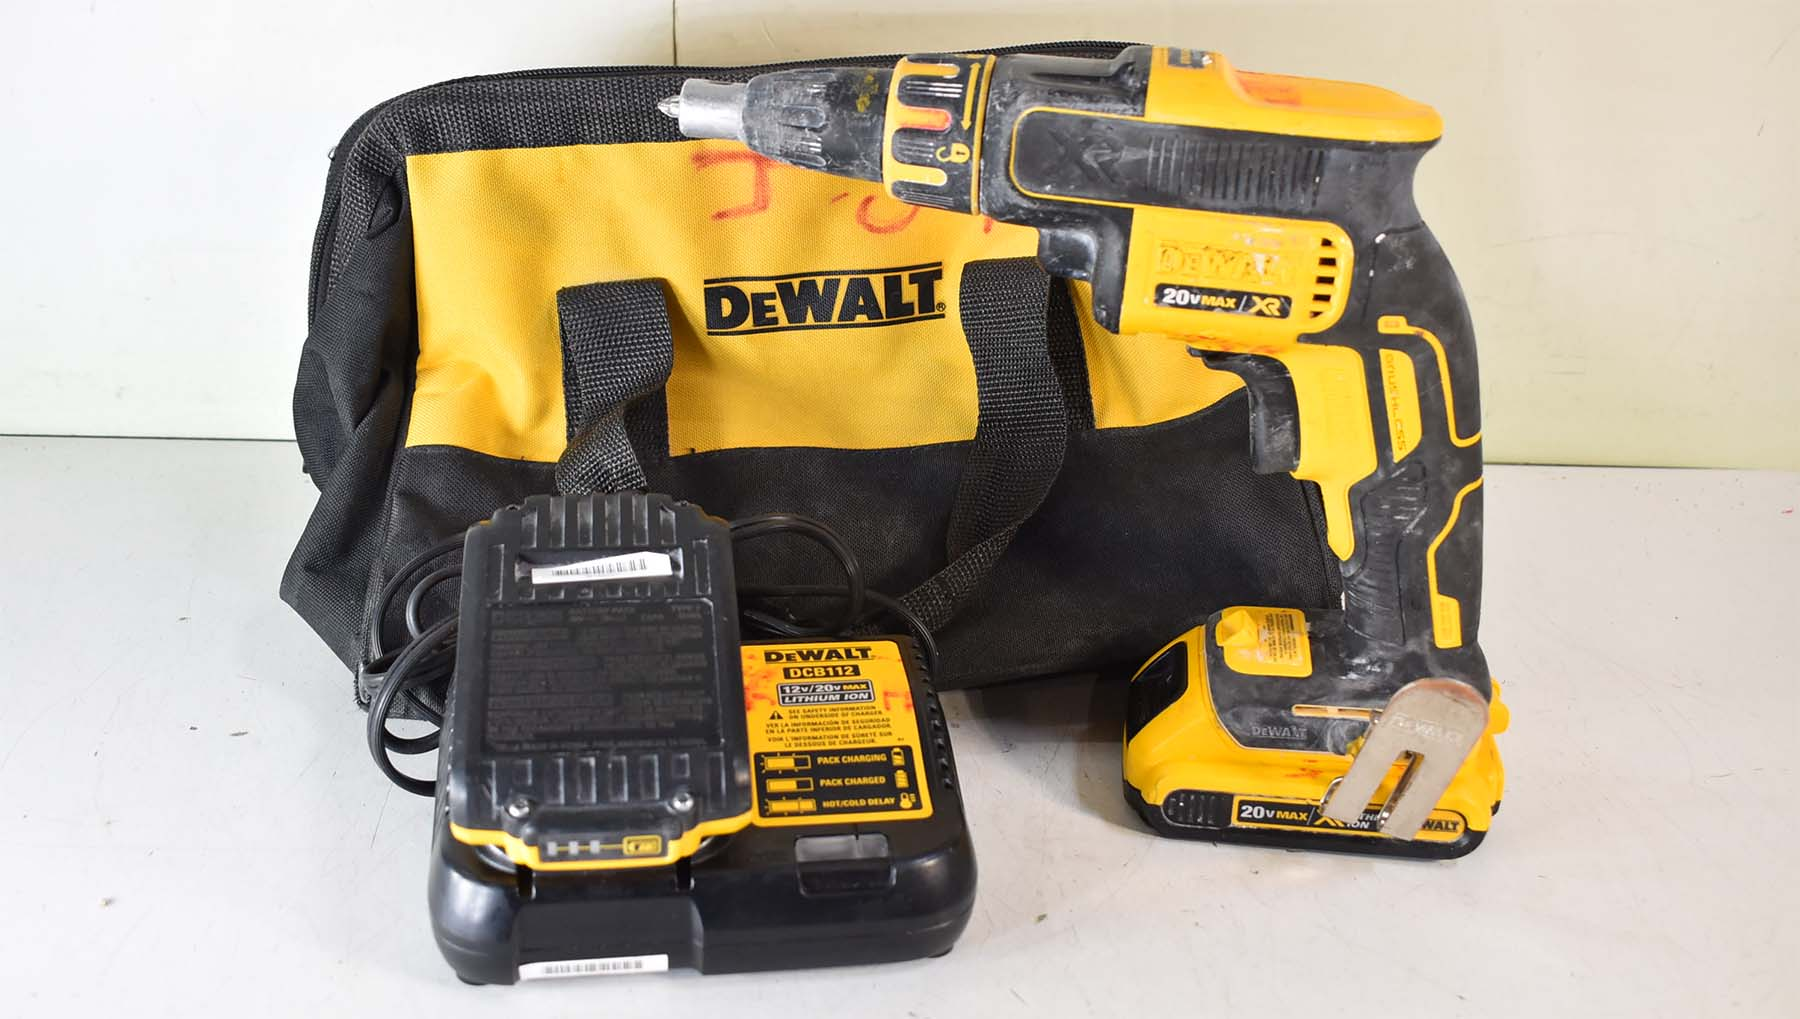 cordless screw gun set with bag charger and battery closeup picture